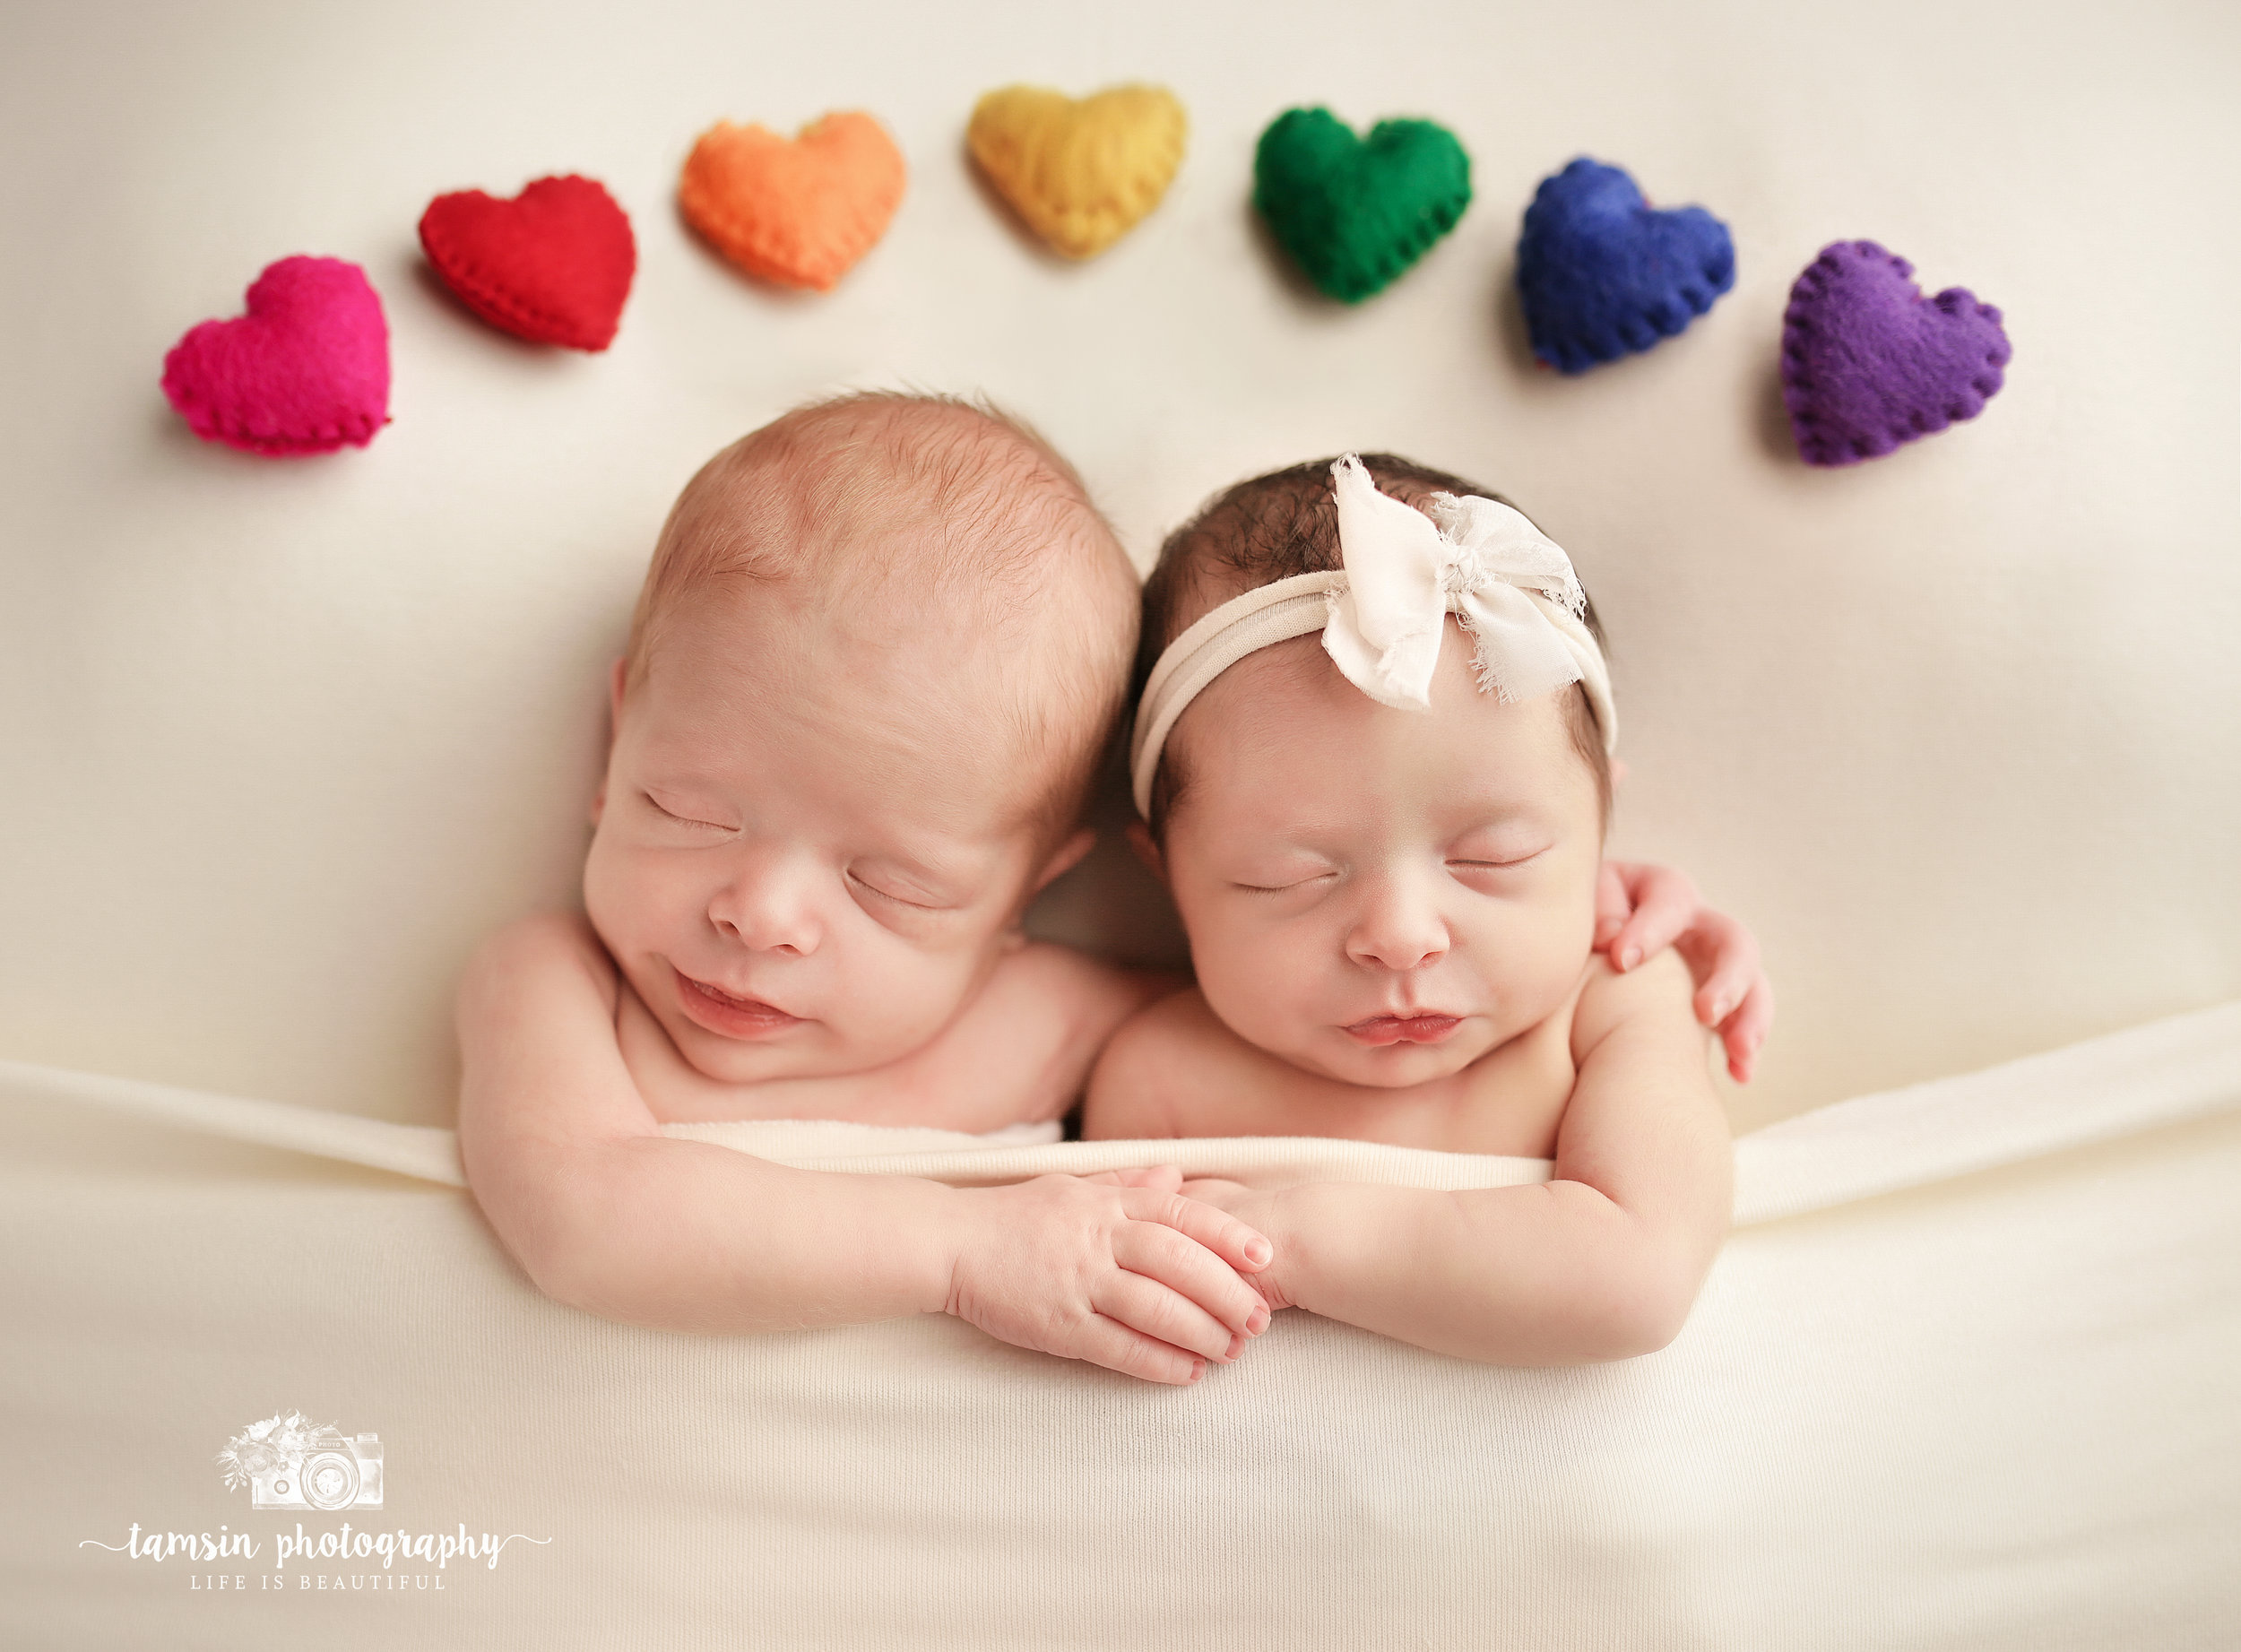 Newborn IVF Twins Rainbow Babies Portrait Tamsin Photography.jpg